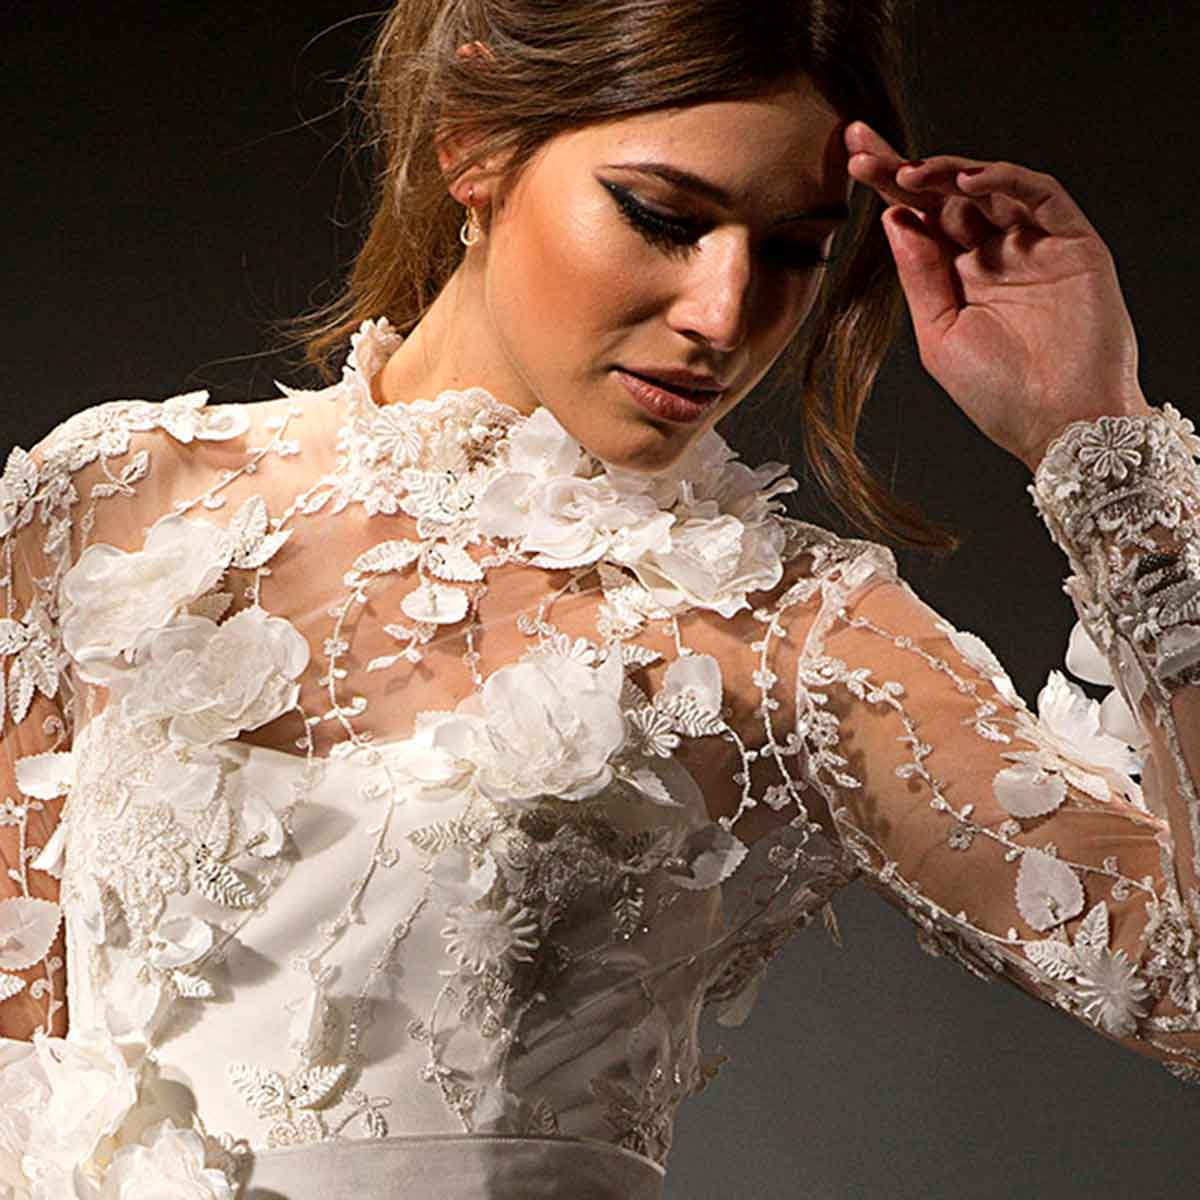 Harper wedding dress designed by Rikke Gudnitz, Gudnitz Copenhagen